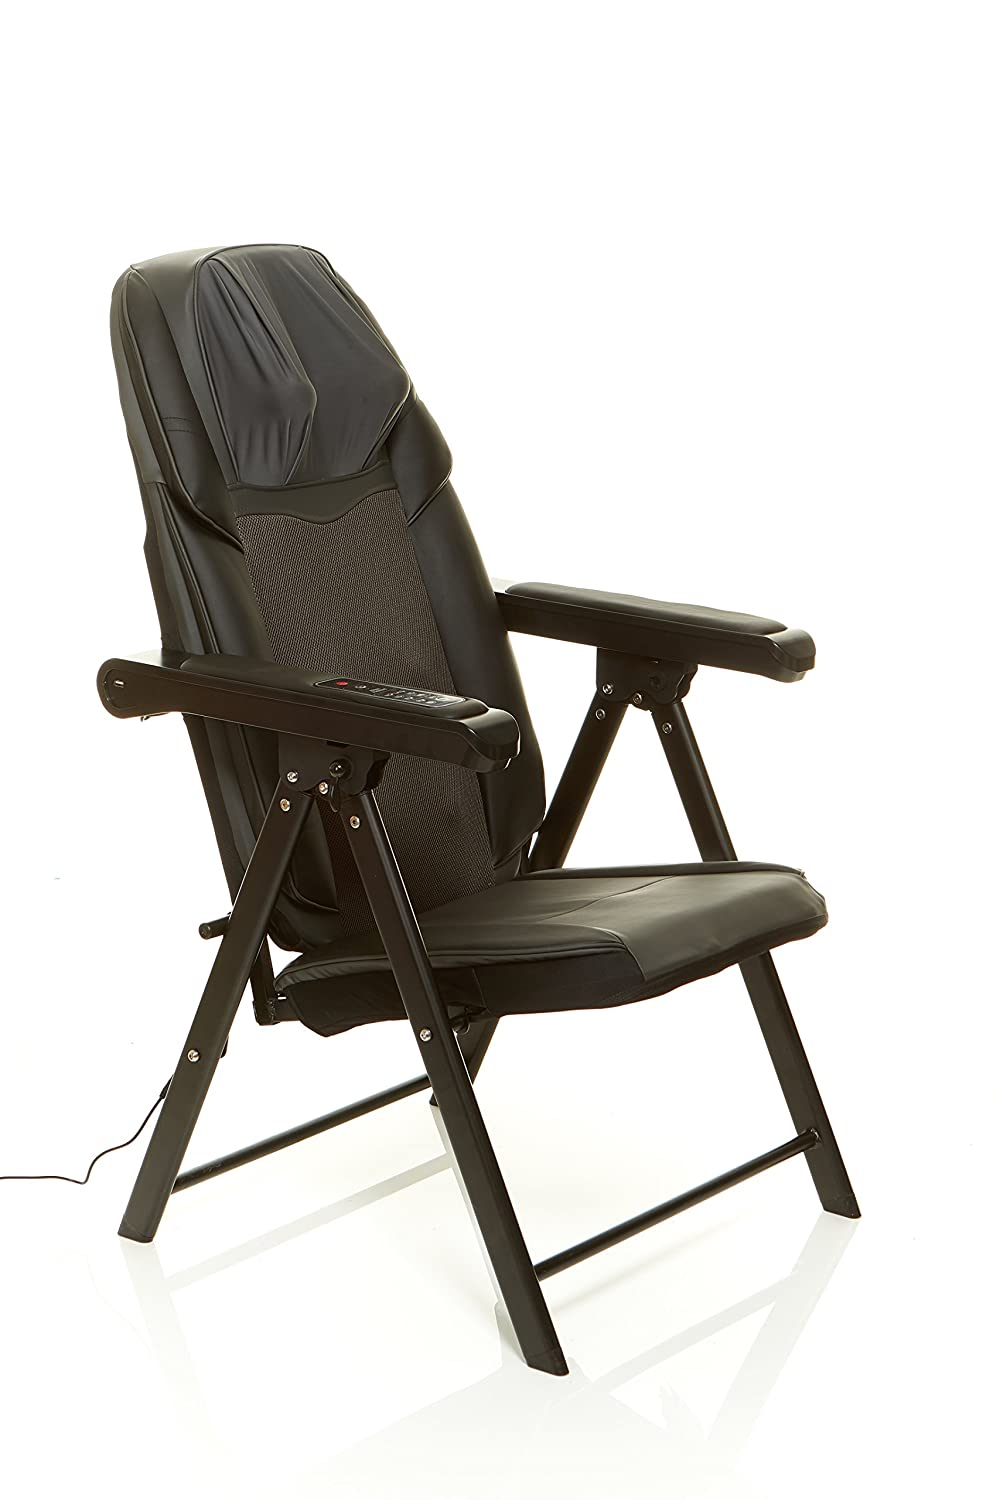 sharper image foldable shiatsu massage chair review